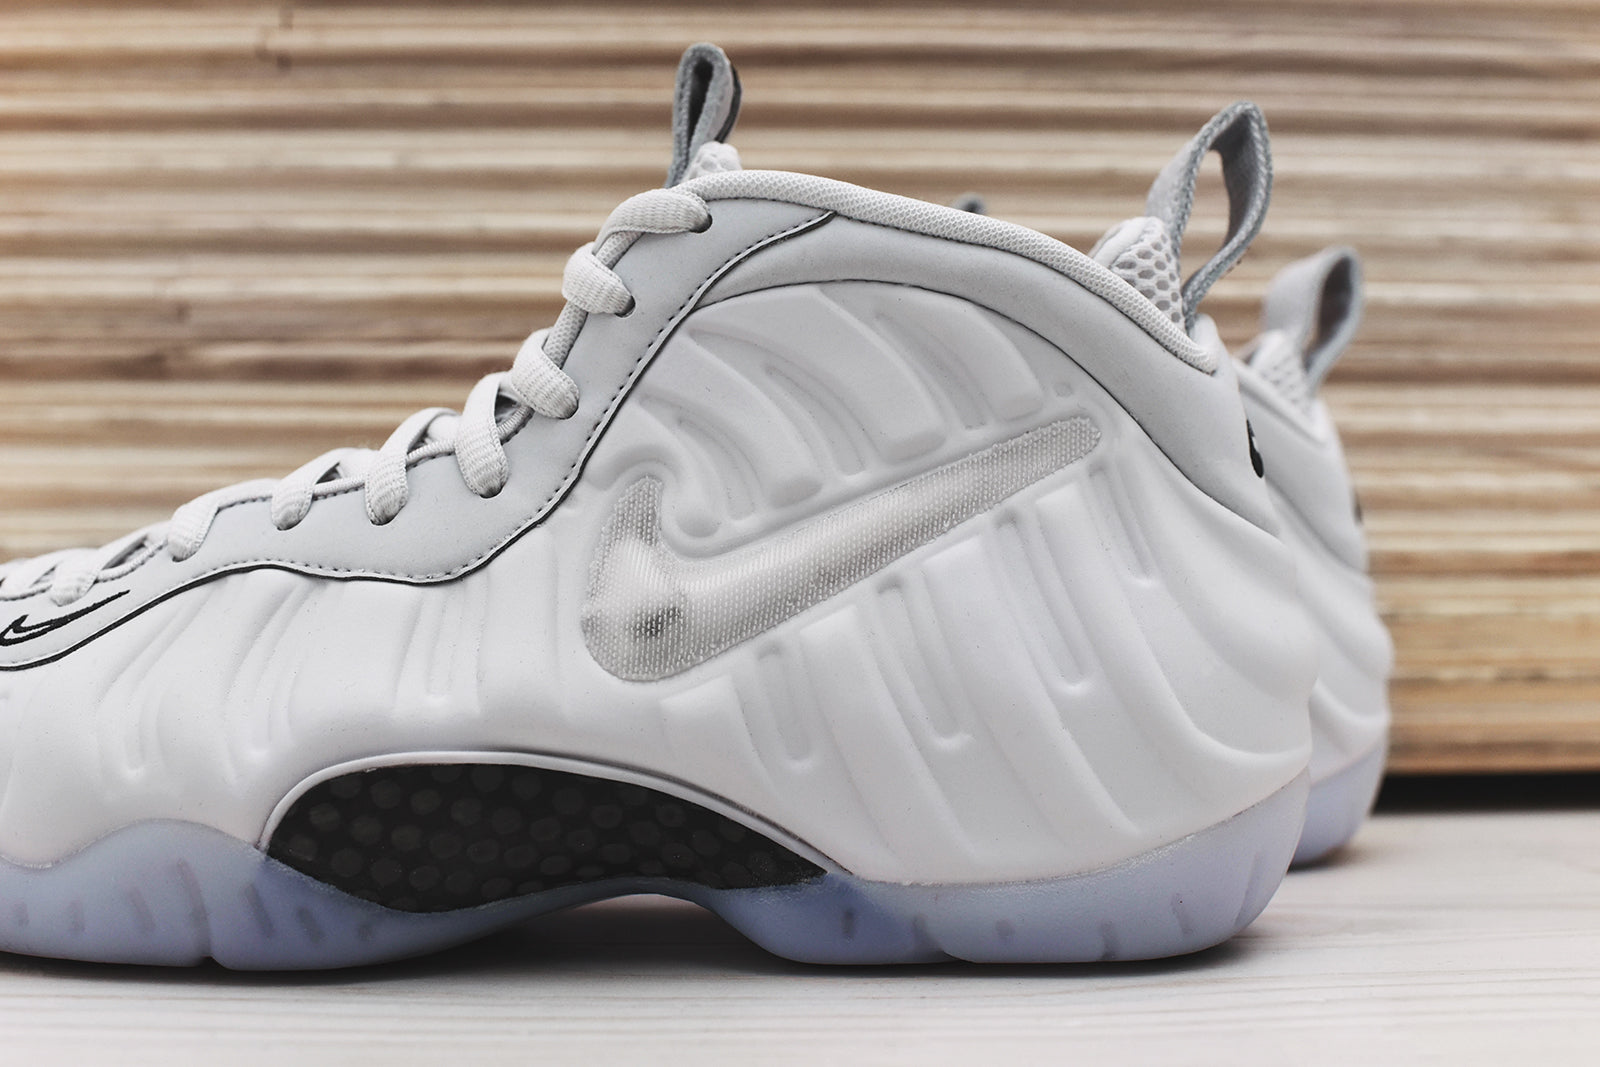 new style e5f9e d993e Nike Air Foamposite Pro AS QS - Vast Grey / Black – Kith